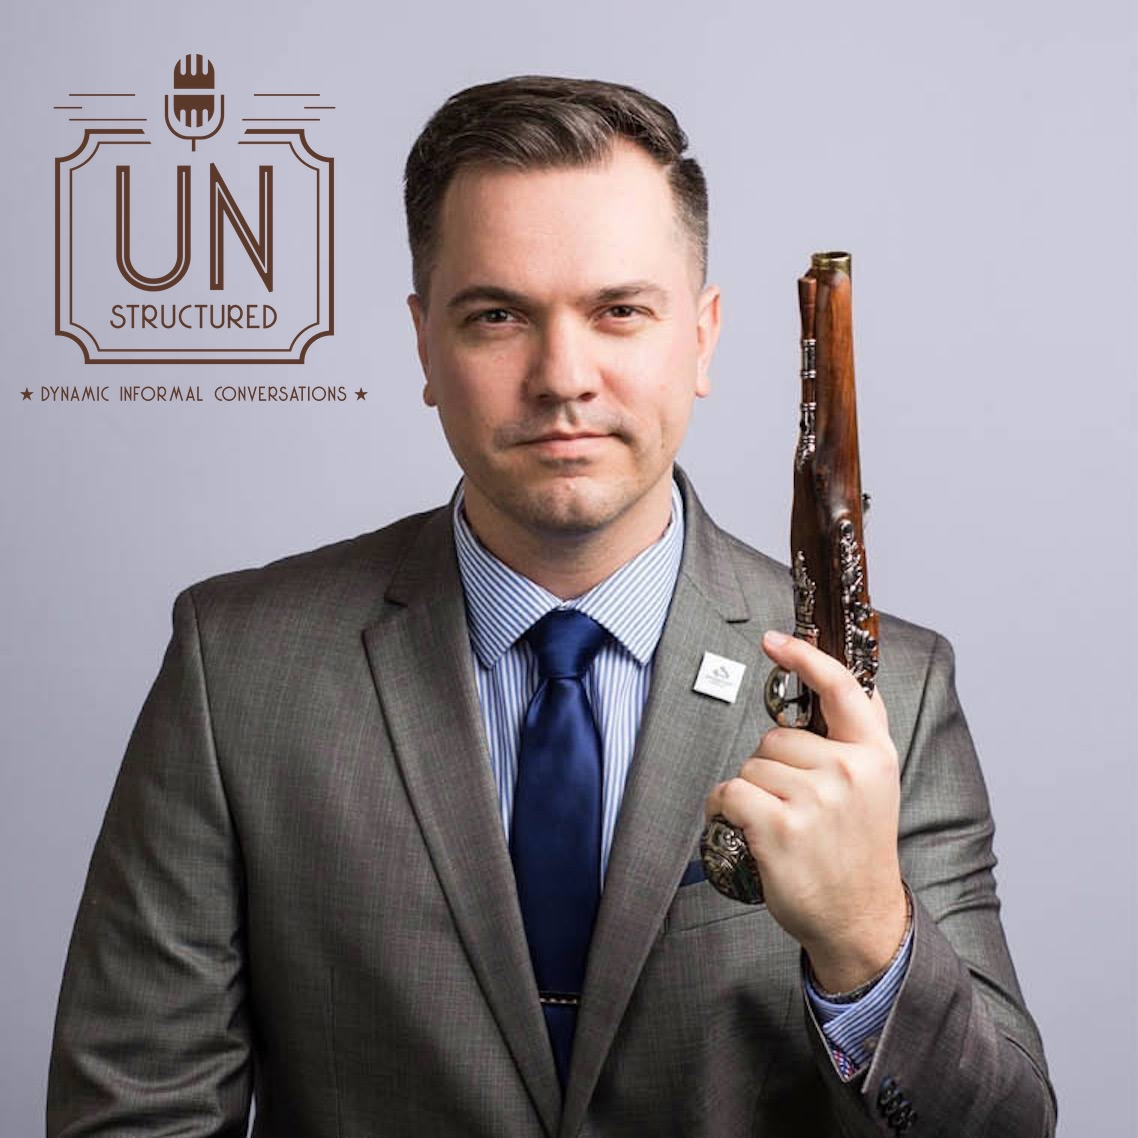 025 - Austin Petersen UnstructuredPod Unstructured interviews - Dynamic Informal Conversations with unique wide-ranging and well-researched interviews hosted by Eric Hunley